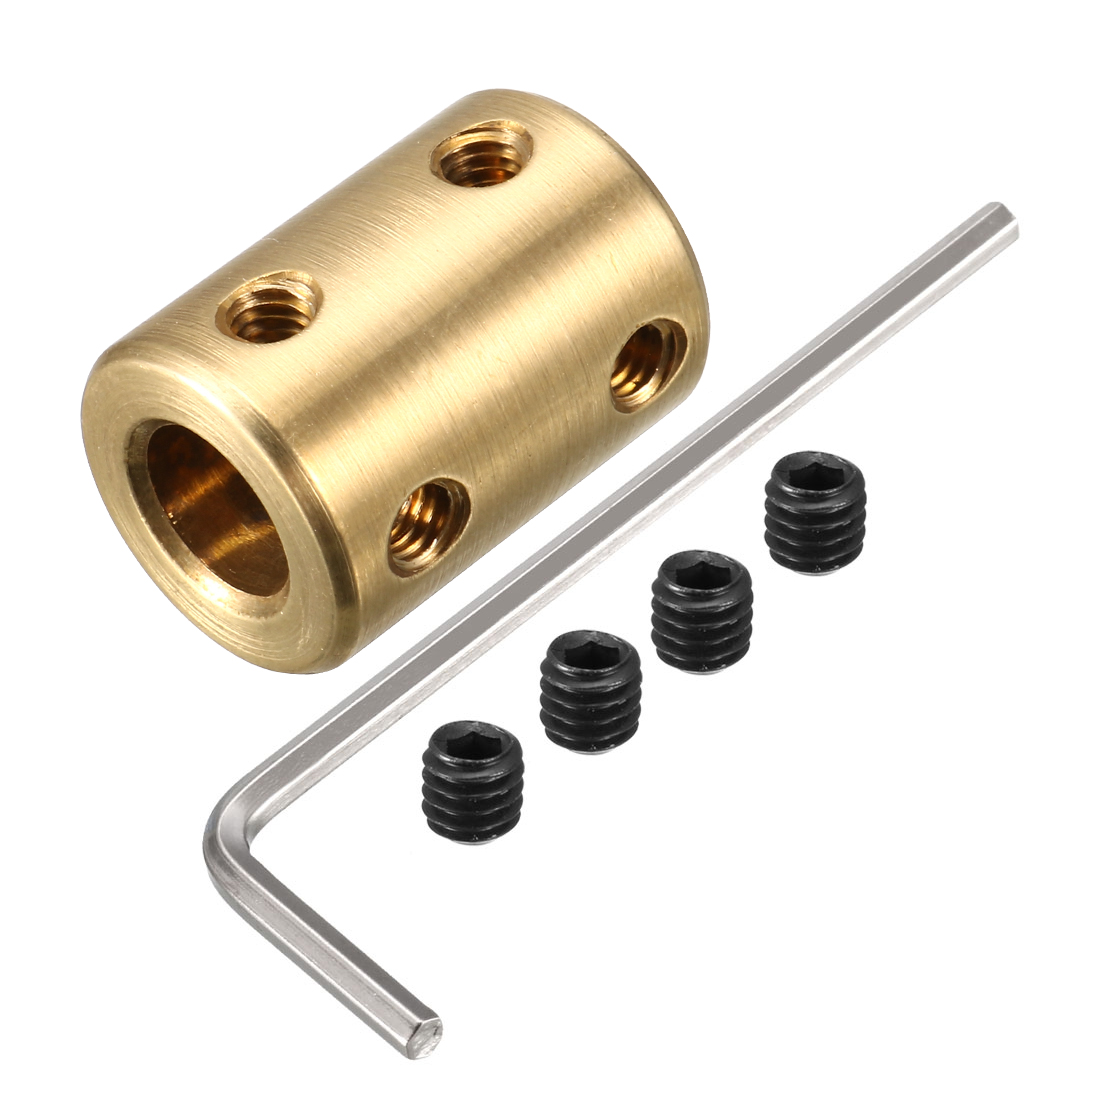 8mm Shaft Robot Rigid Copper Motor Coupling Coupler Connector w Tight Screws